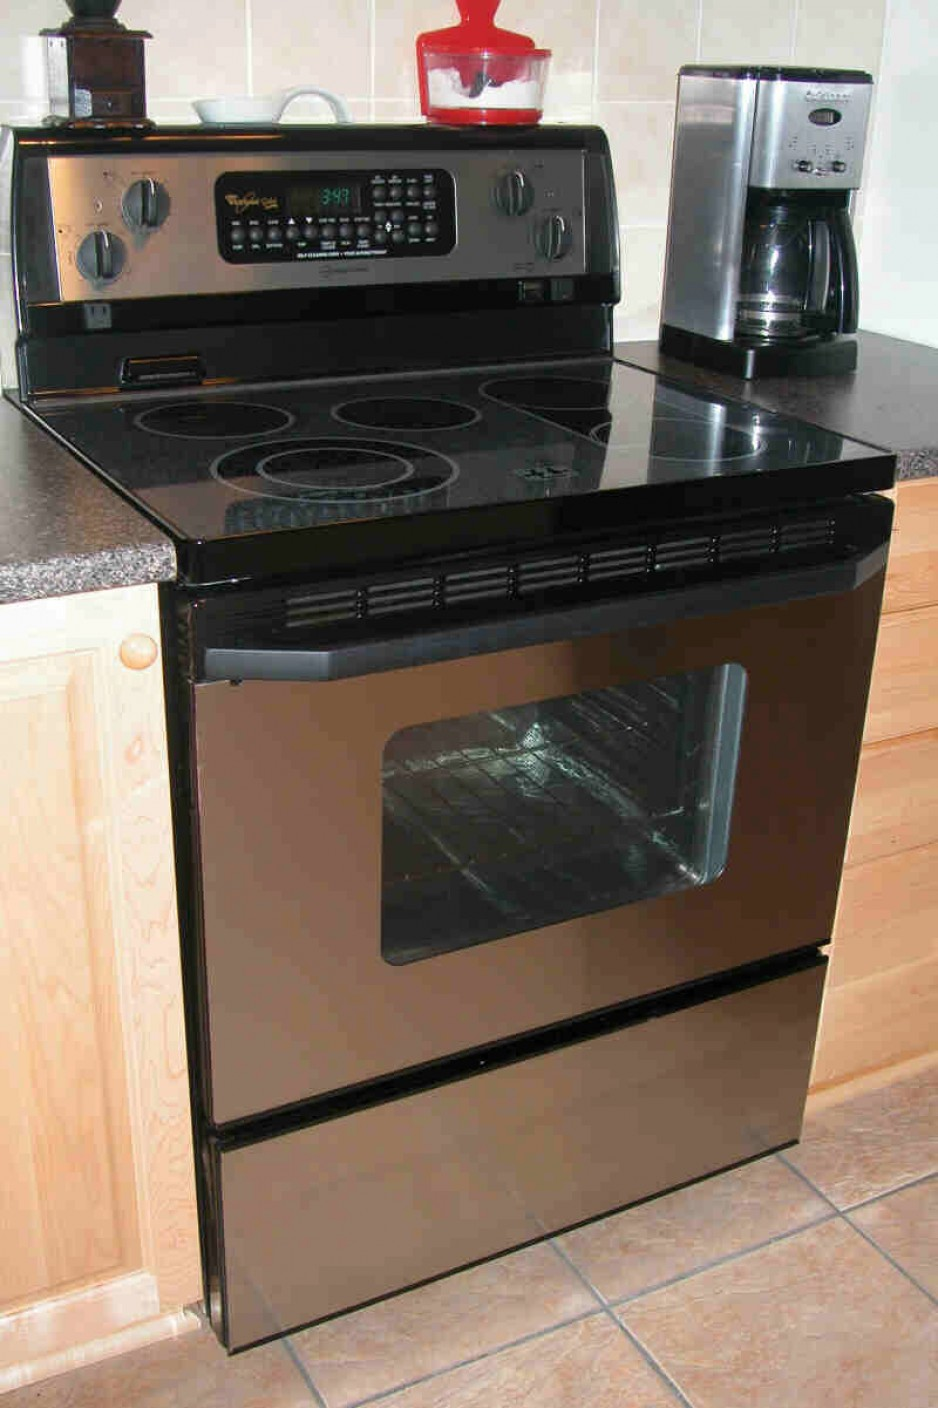 From The Stove To Electric Range Collection Wiring Outlet Canada Whirlpool Corporation 2003